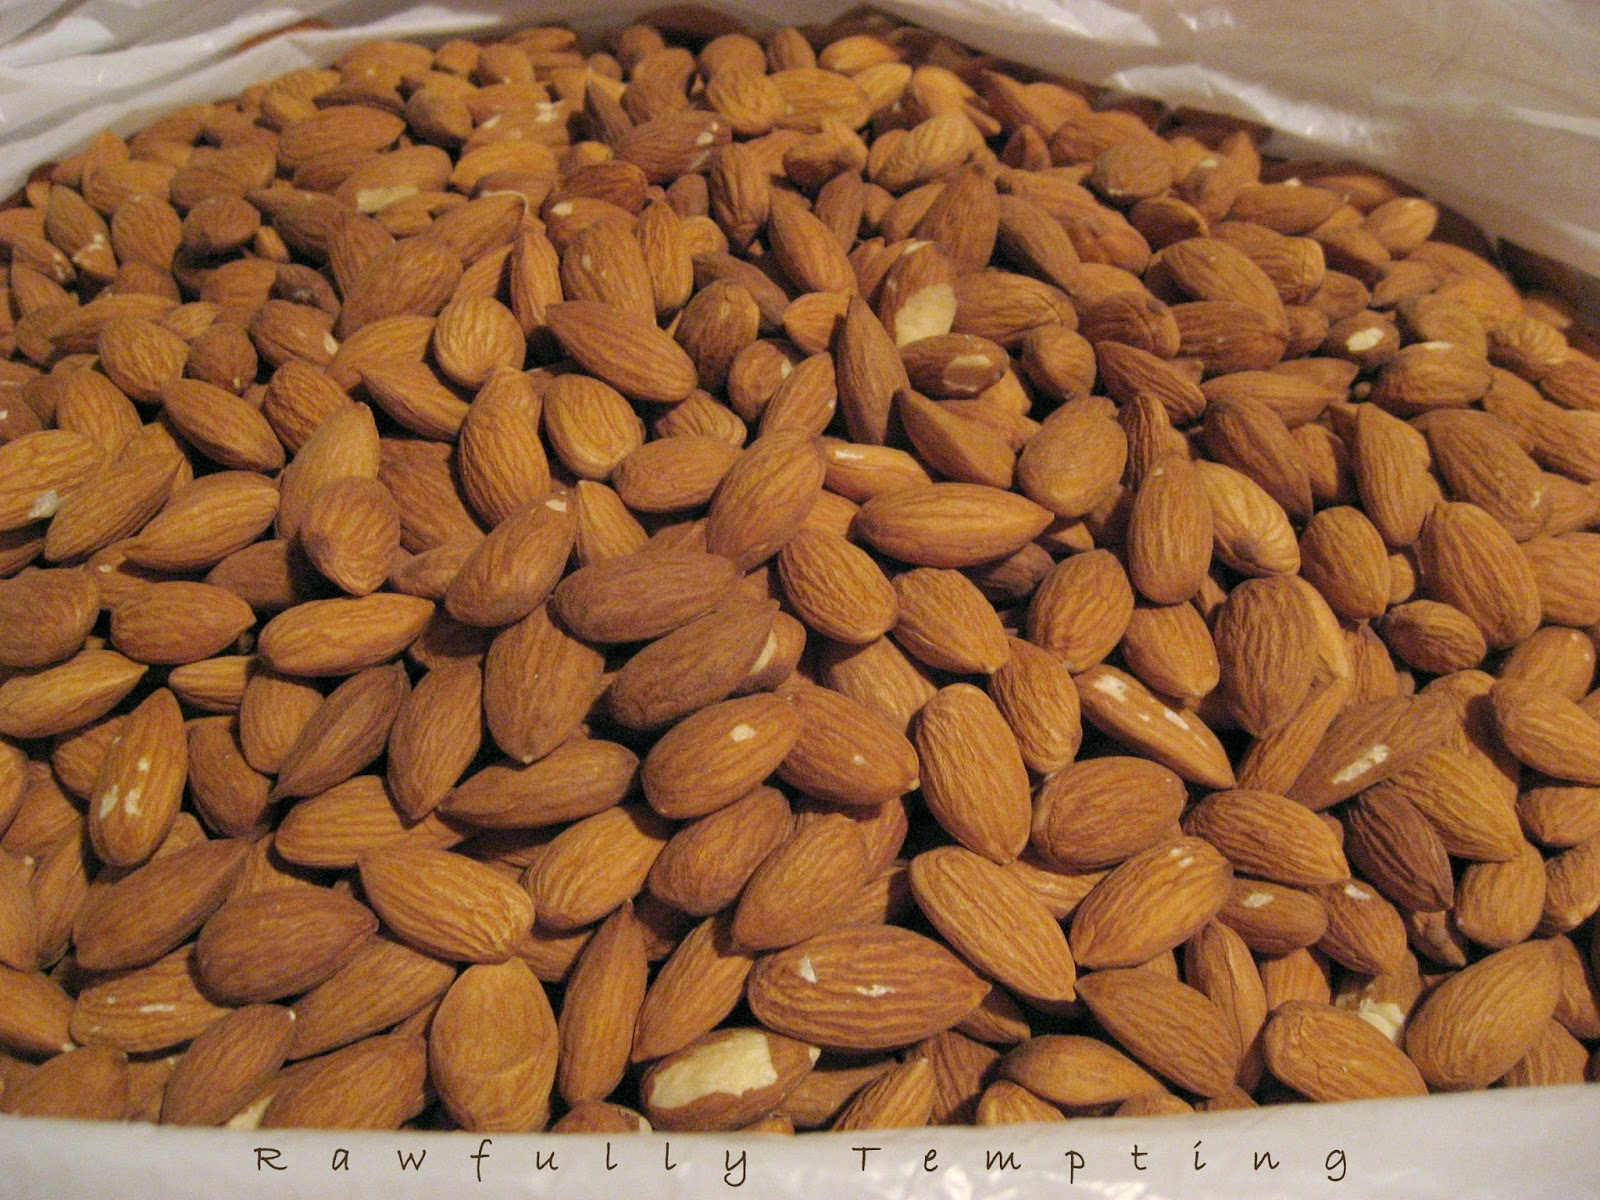 Unpastuerized Almonds - From Farm to Table Almonds